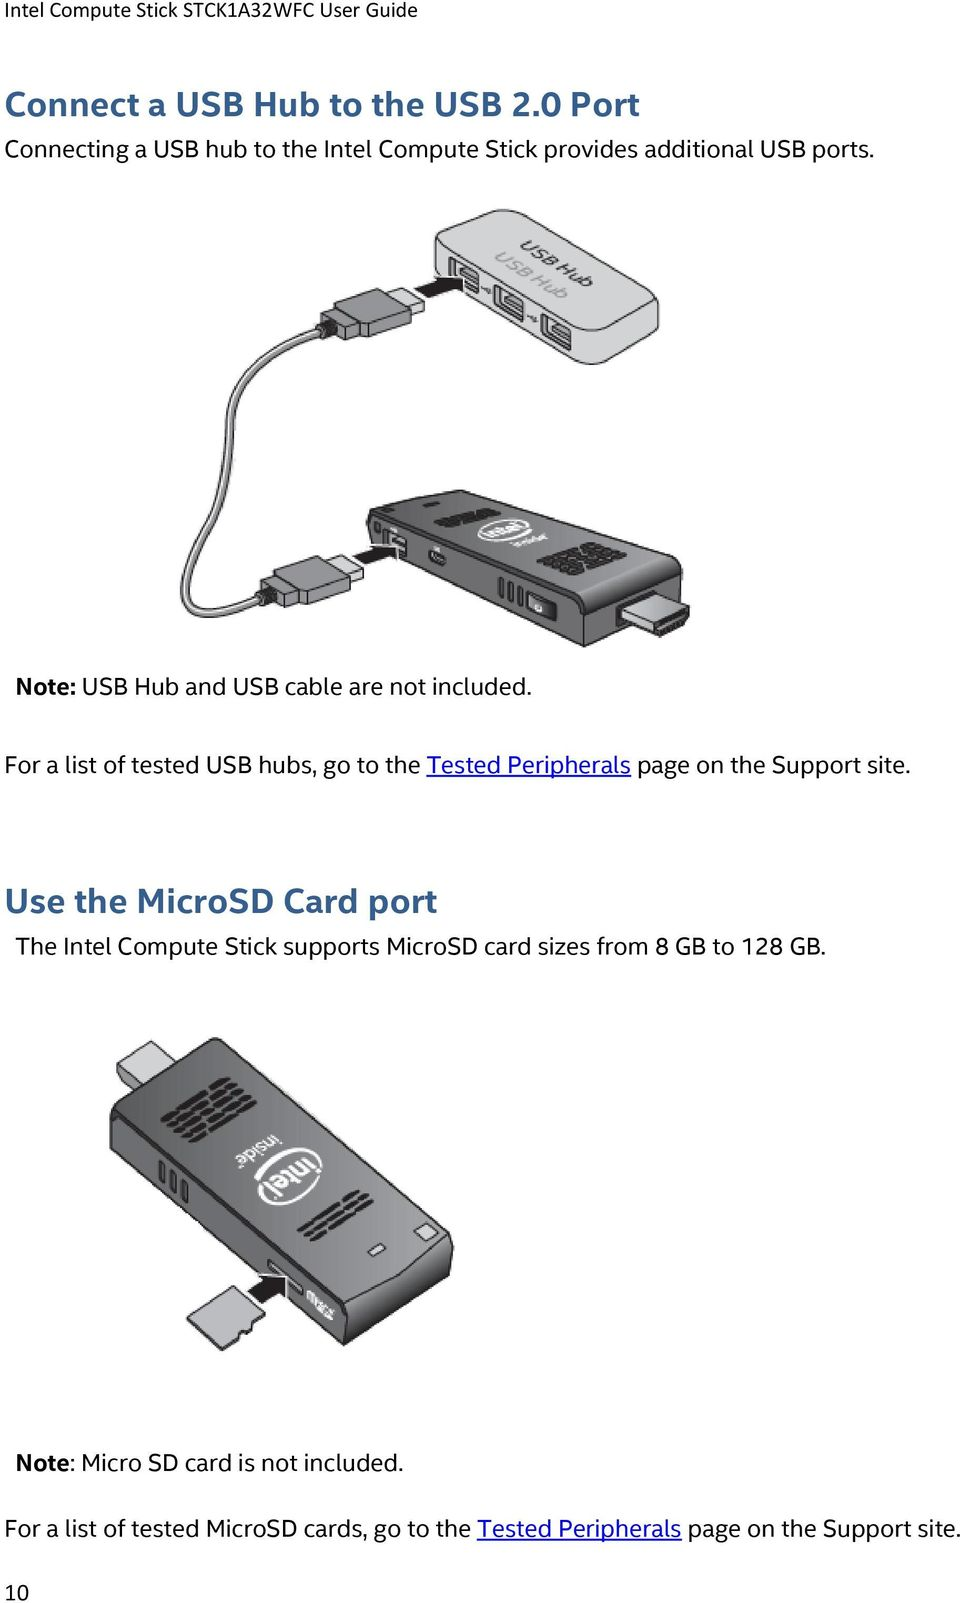 For a list of tested USB hubs, go to the Tested Peripherals page on the Support site.